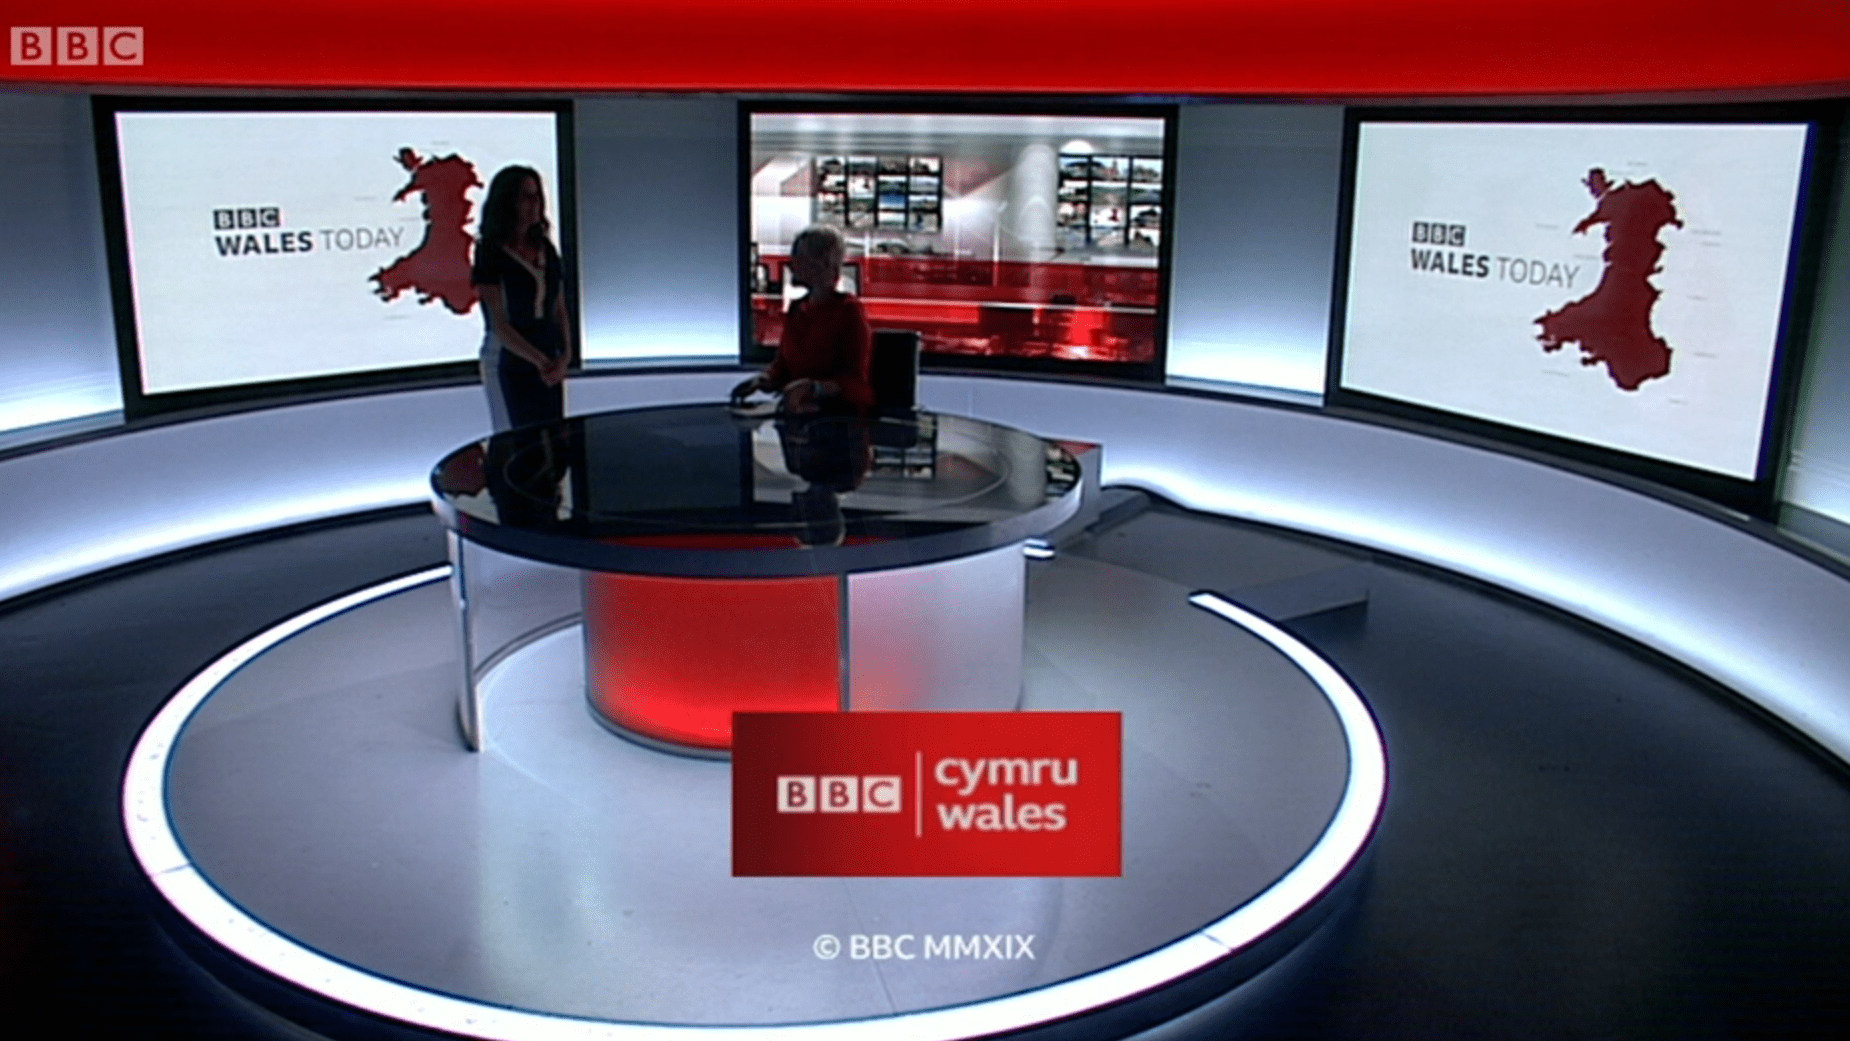 PICTURED: BBC Wales Today programme endboard.